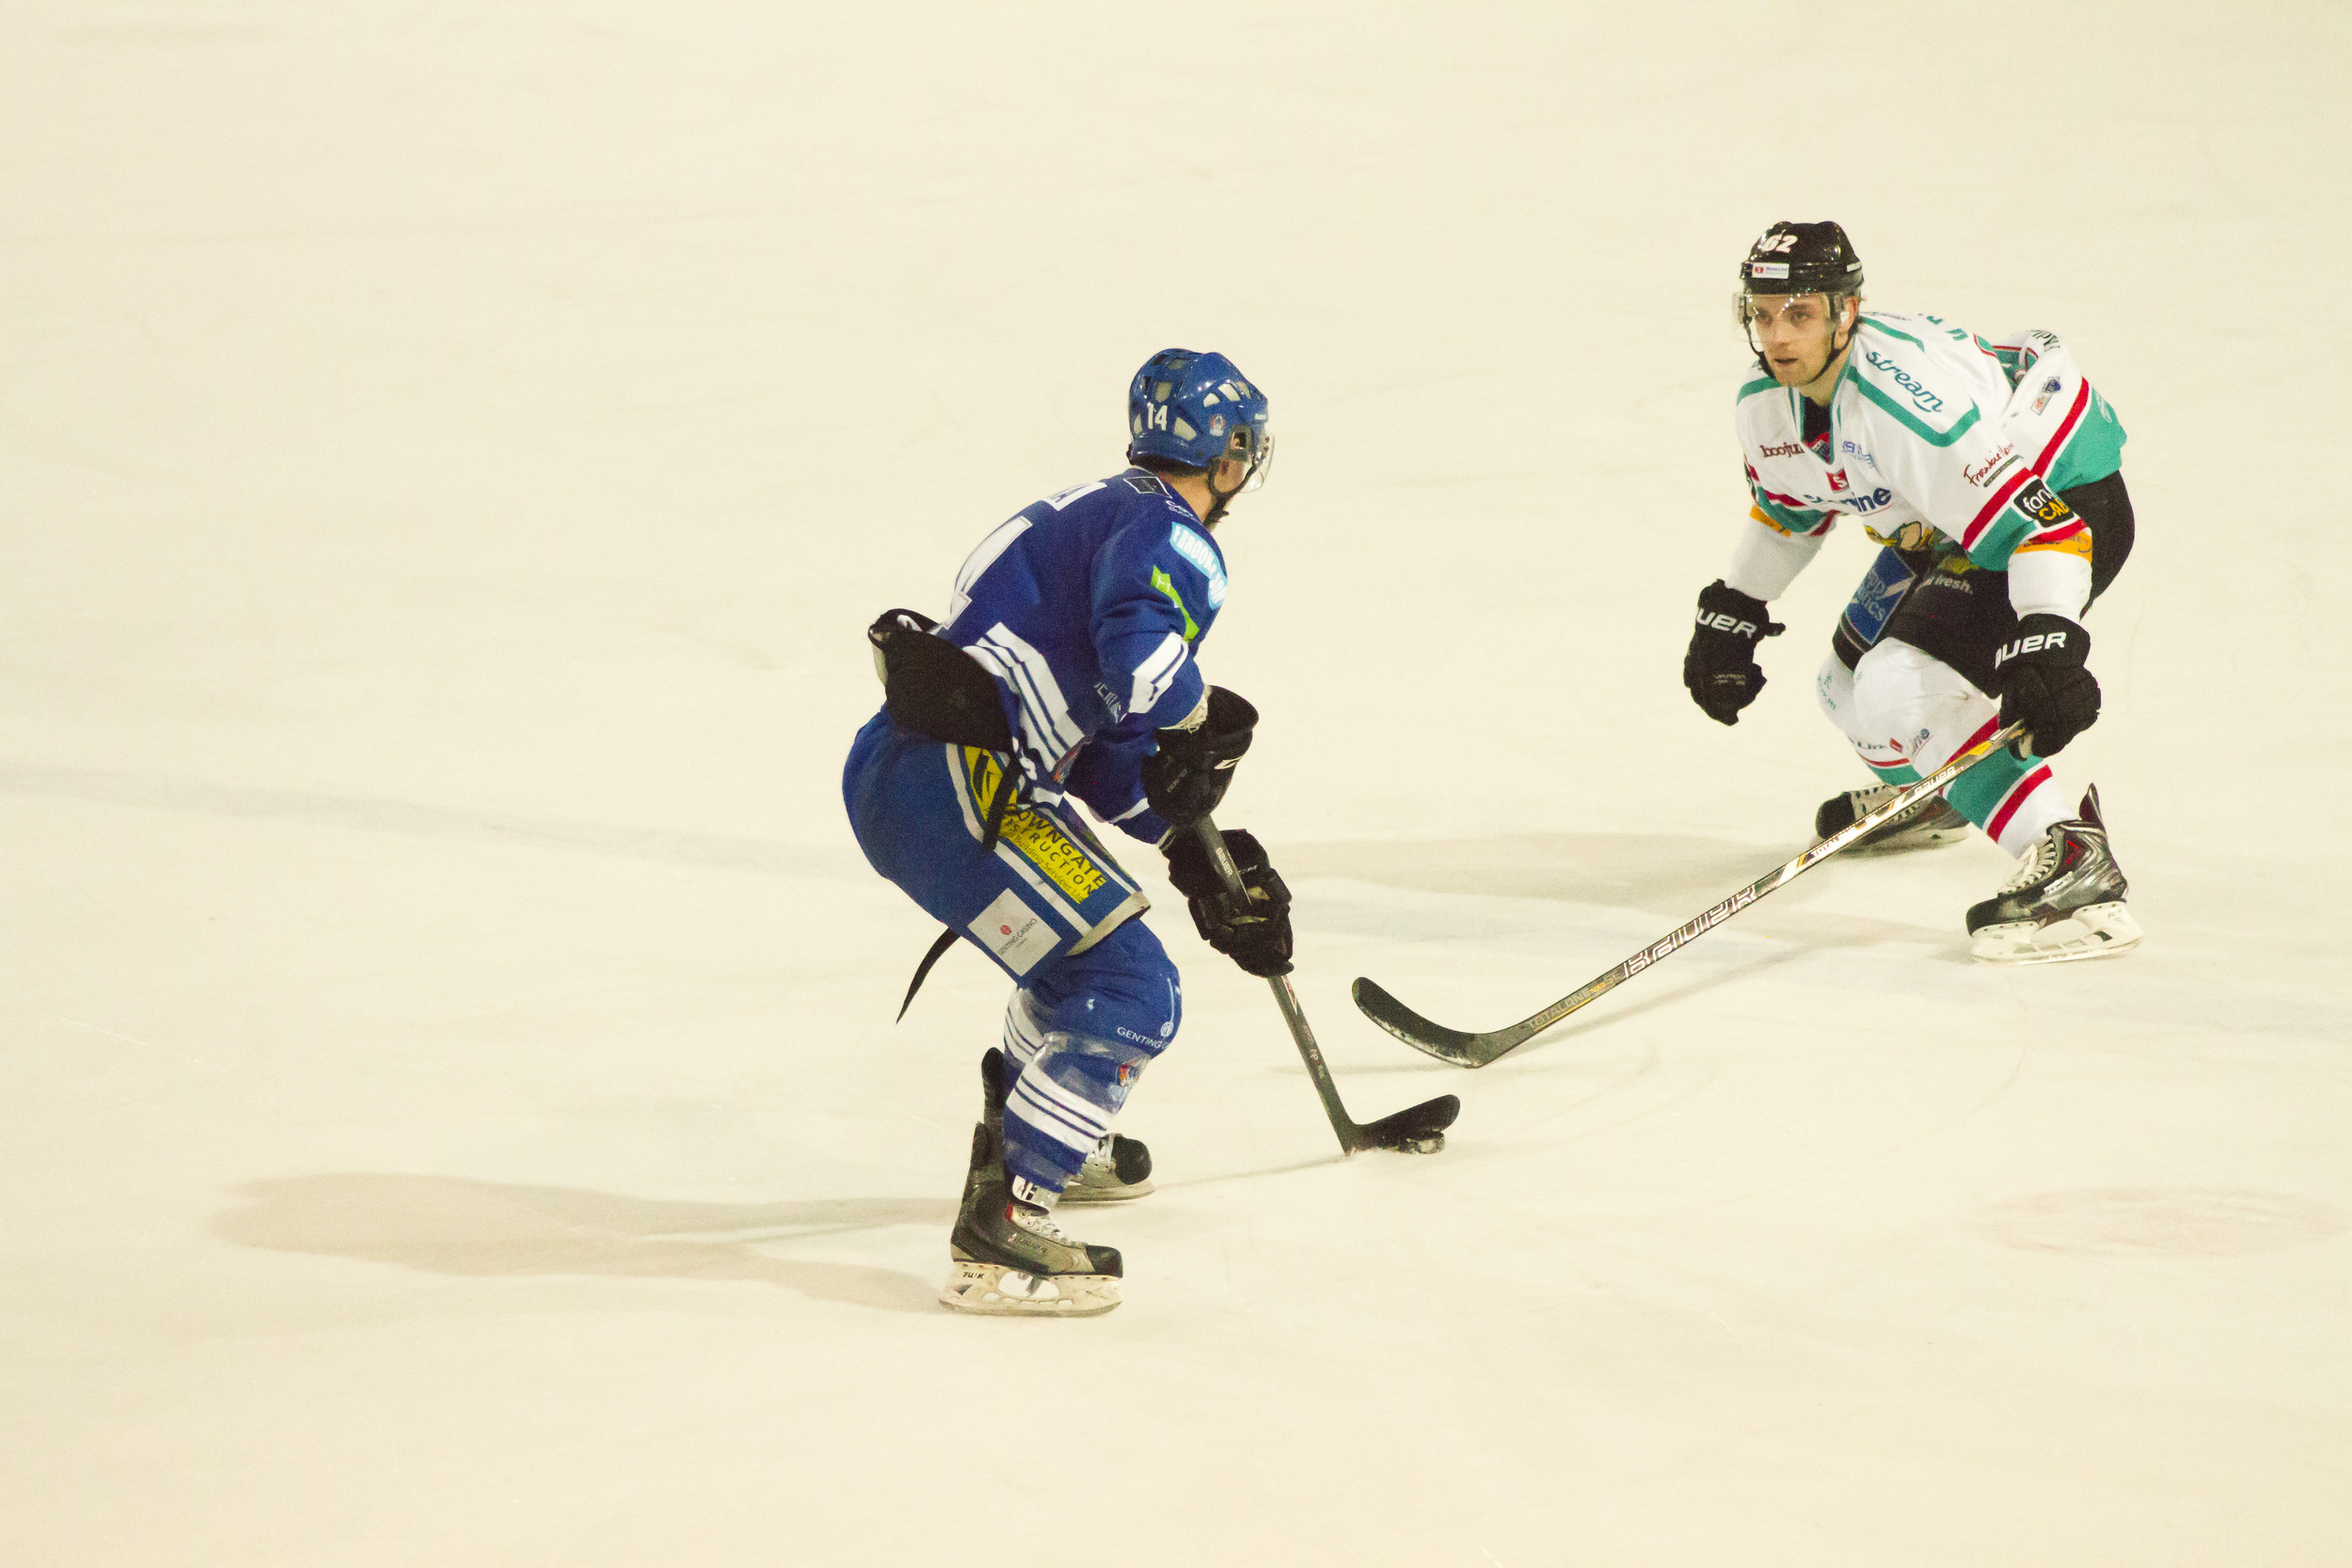 In such a fast-paced sport like ice hockey, sometimes it is easy to miss those moments when there is a pause in play. This moment shows a stand-off between two of the opposing players, which lasted hundredths of seconds.